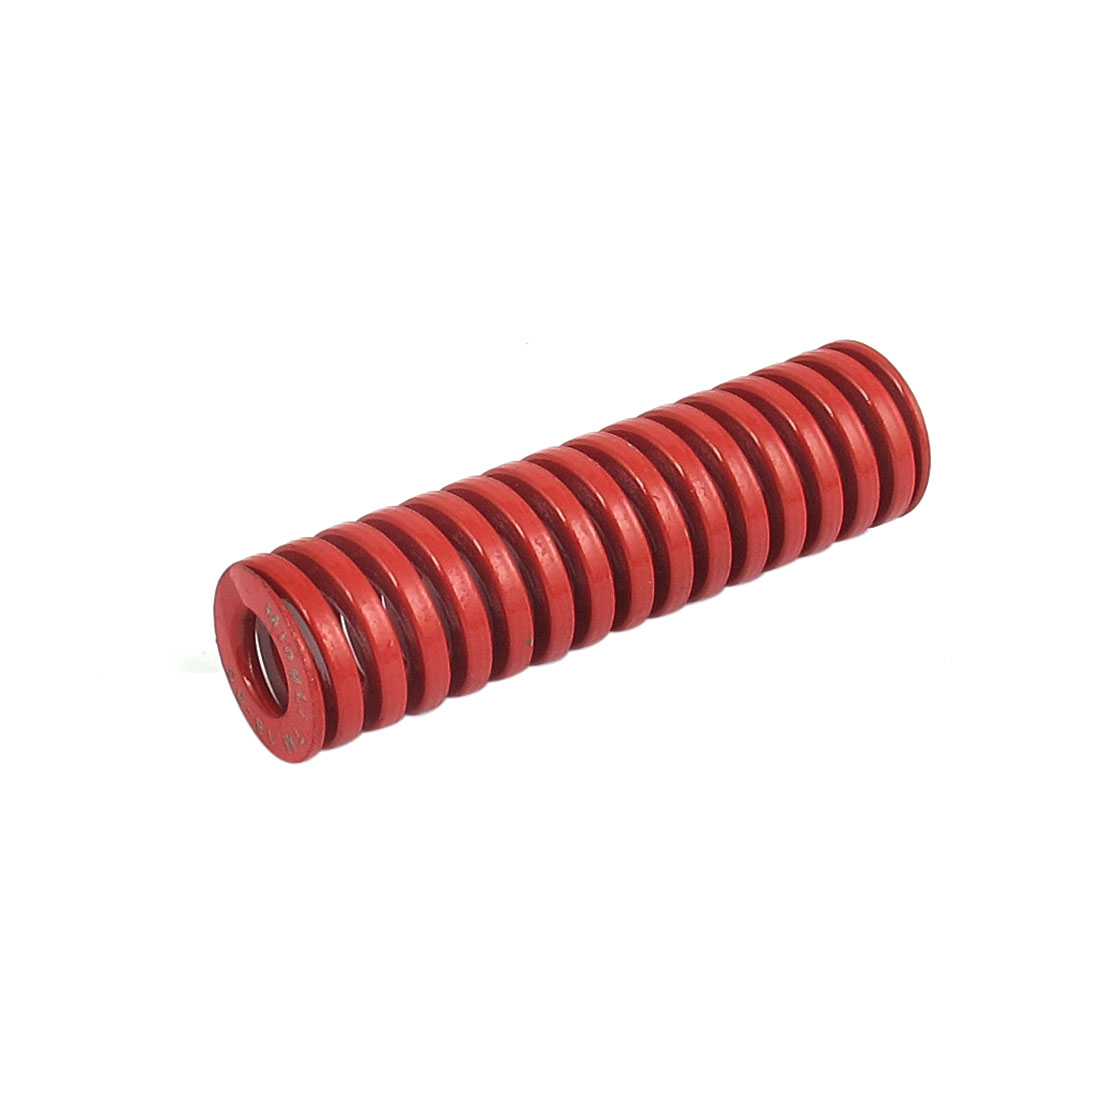 18mmx65mm Chromium Alloy Steel Medium Load Die Spring Red